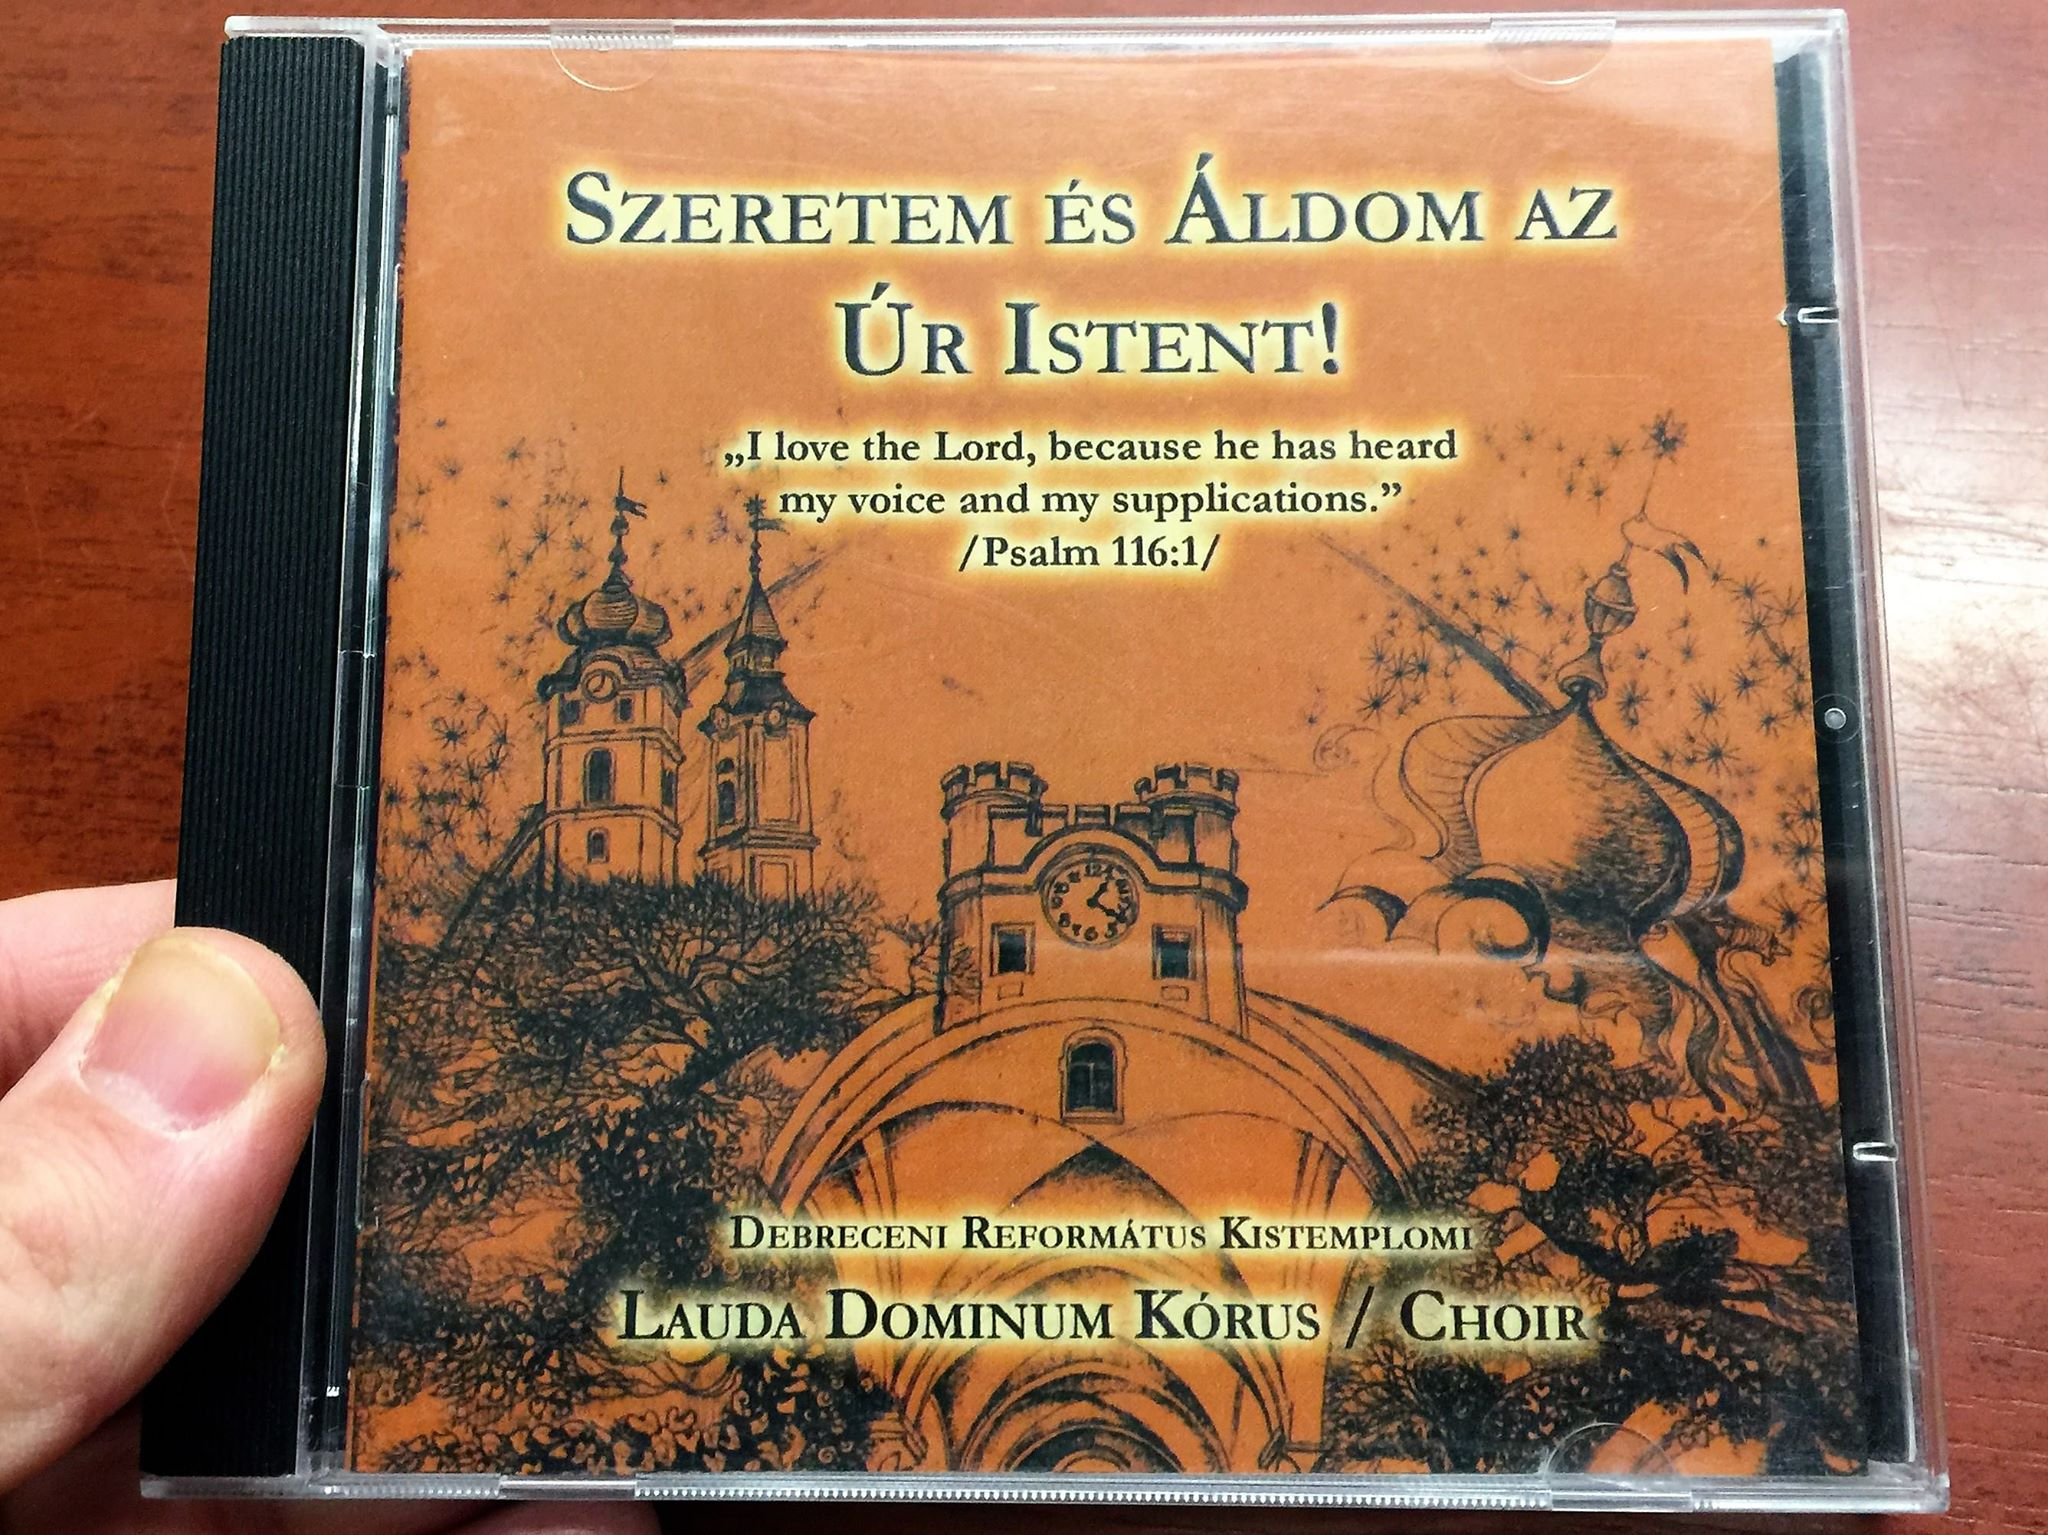 szeretem-s-ldom-az-r-istent-i-love-the-lord-because-he-has-heard-my-voice-and-my-supplications-psalm-1161-lauda-dominum-k-rus-choir-hungarian-cd-2008-1-.jpg